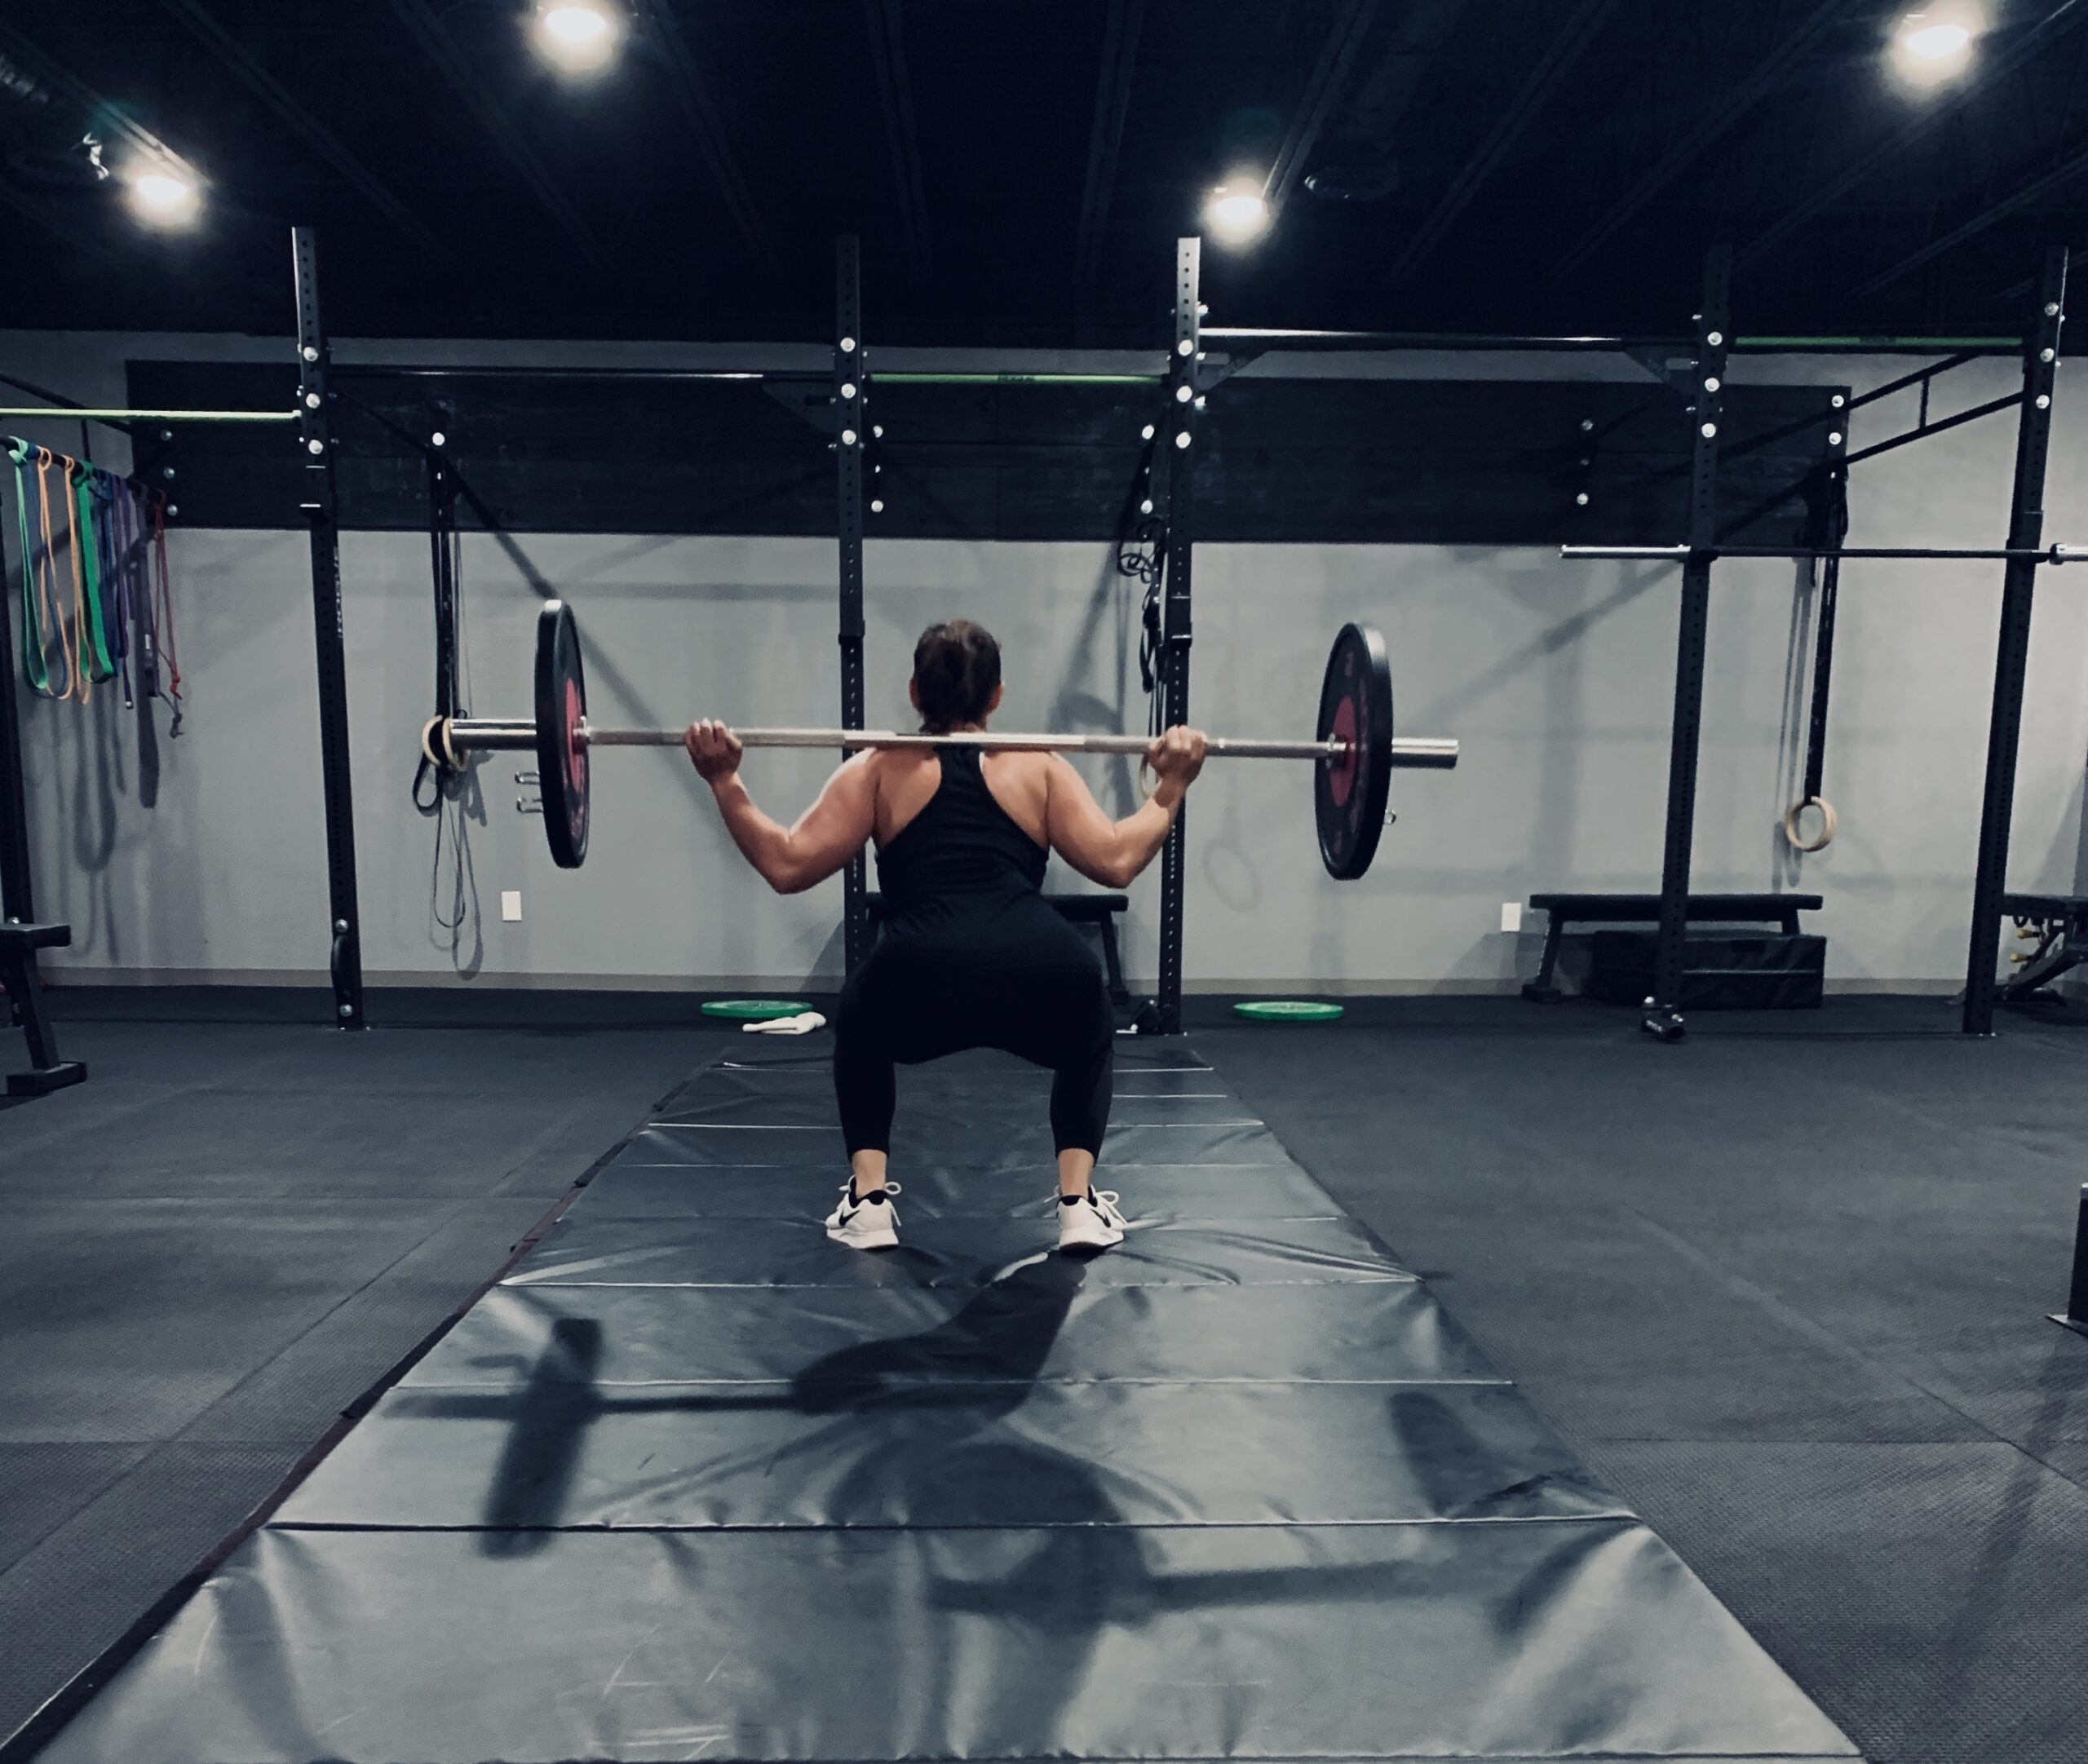 Discover crossfit training, fitness boot camps and BJJ instruction at Compound Fitness